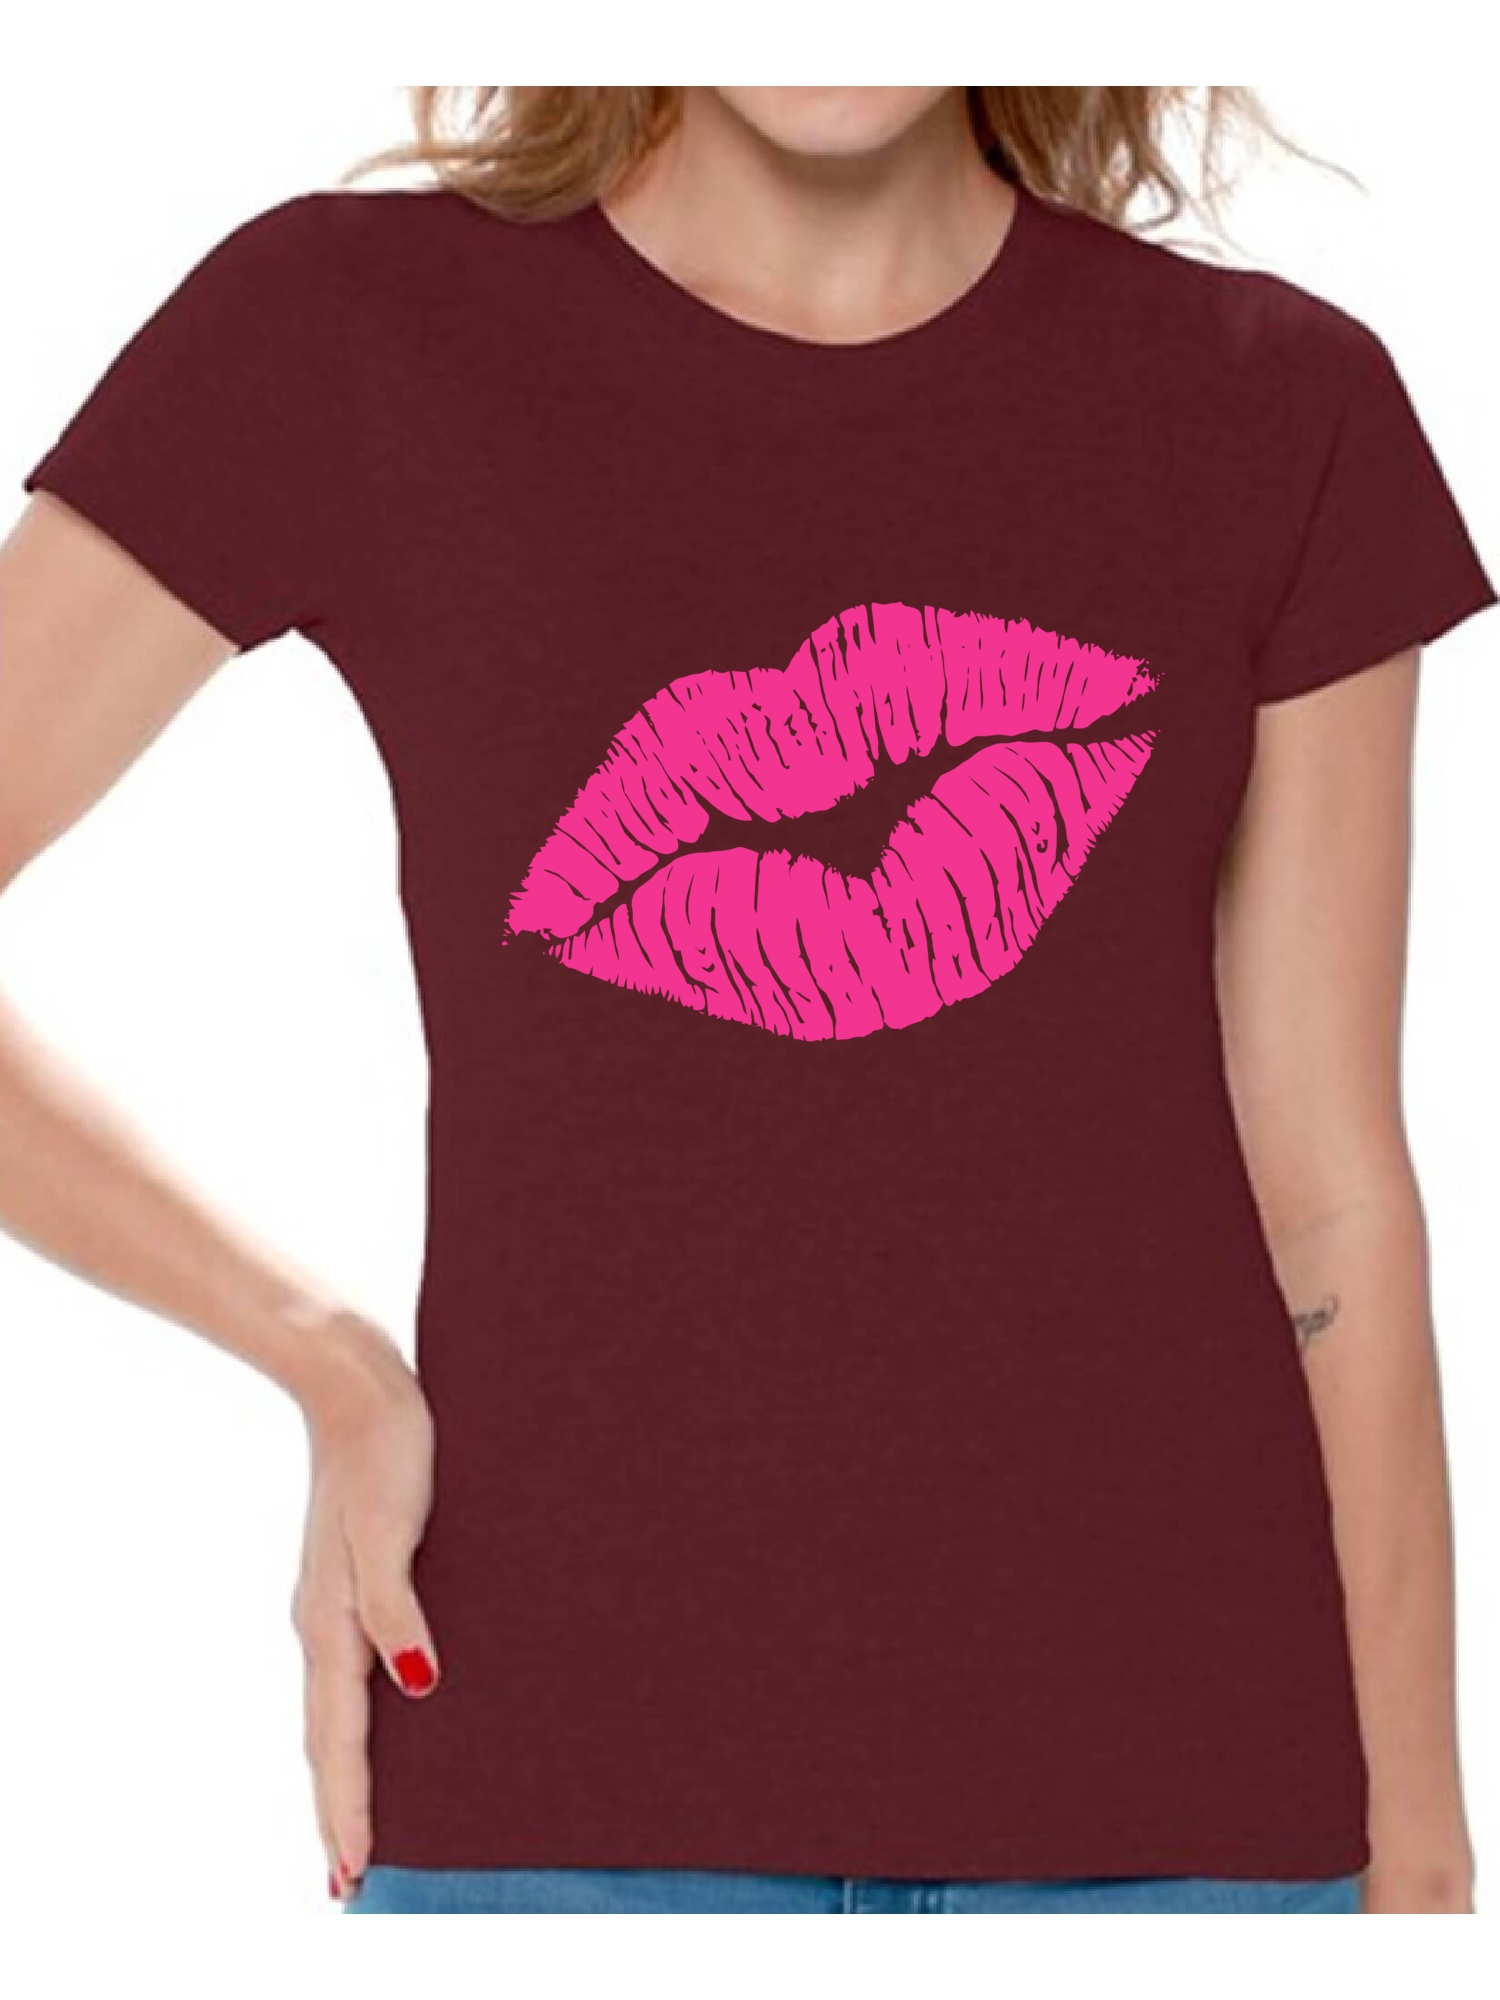 8675f4ca3 Awkward Styles Pink Lips Shirt Retro 80s Neon Lips T Shirt 80s Shirt 80s T  Shirt Retro Vintage 80s Costume 80s Clothes for Women 80s Outfit 80s Party  Girl ...